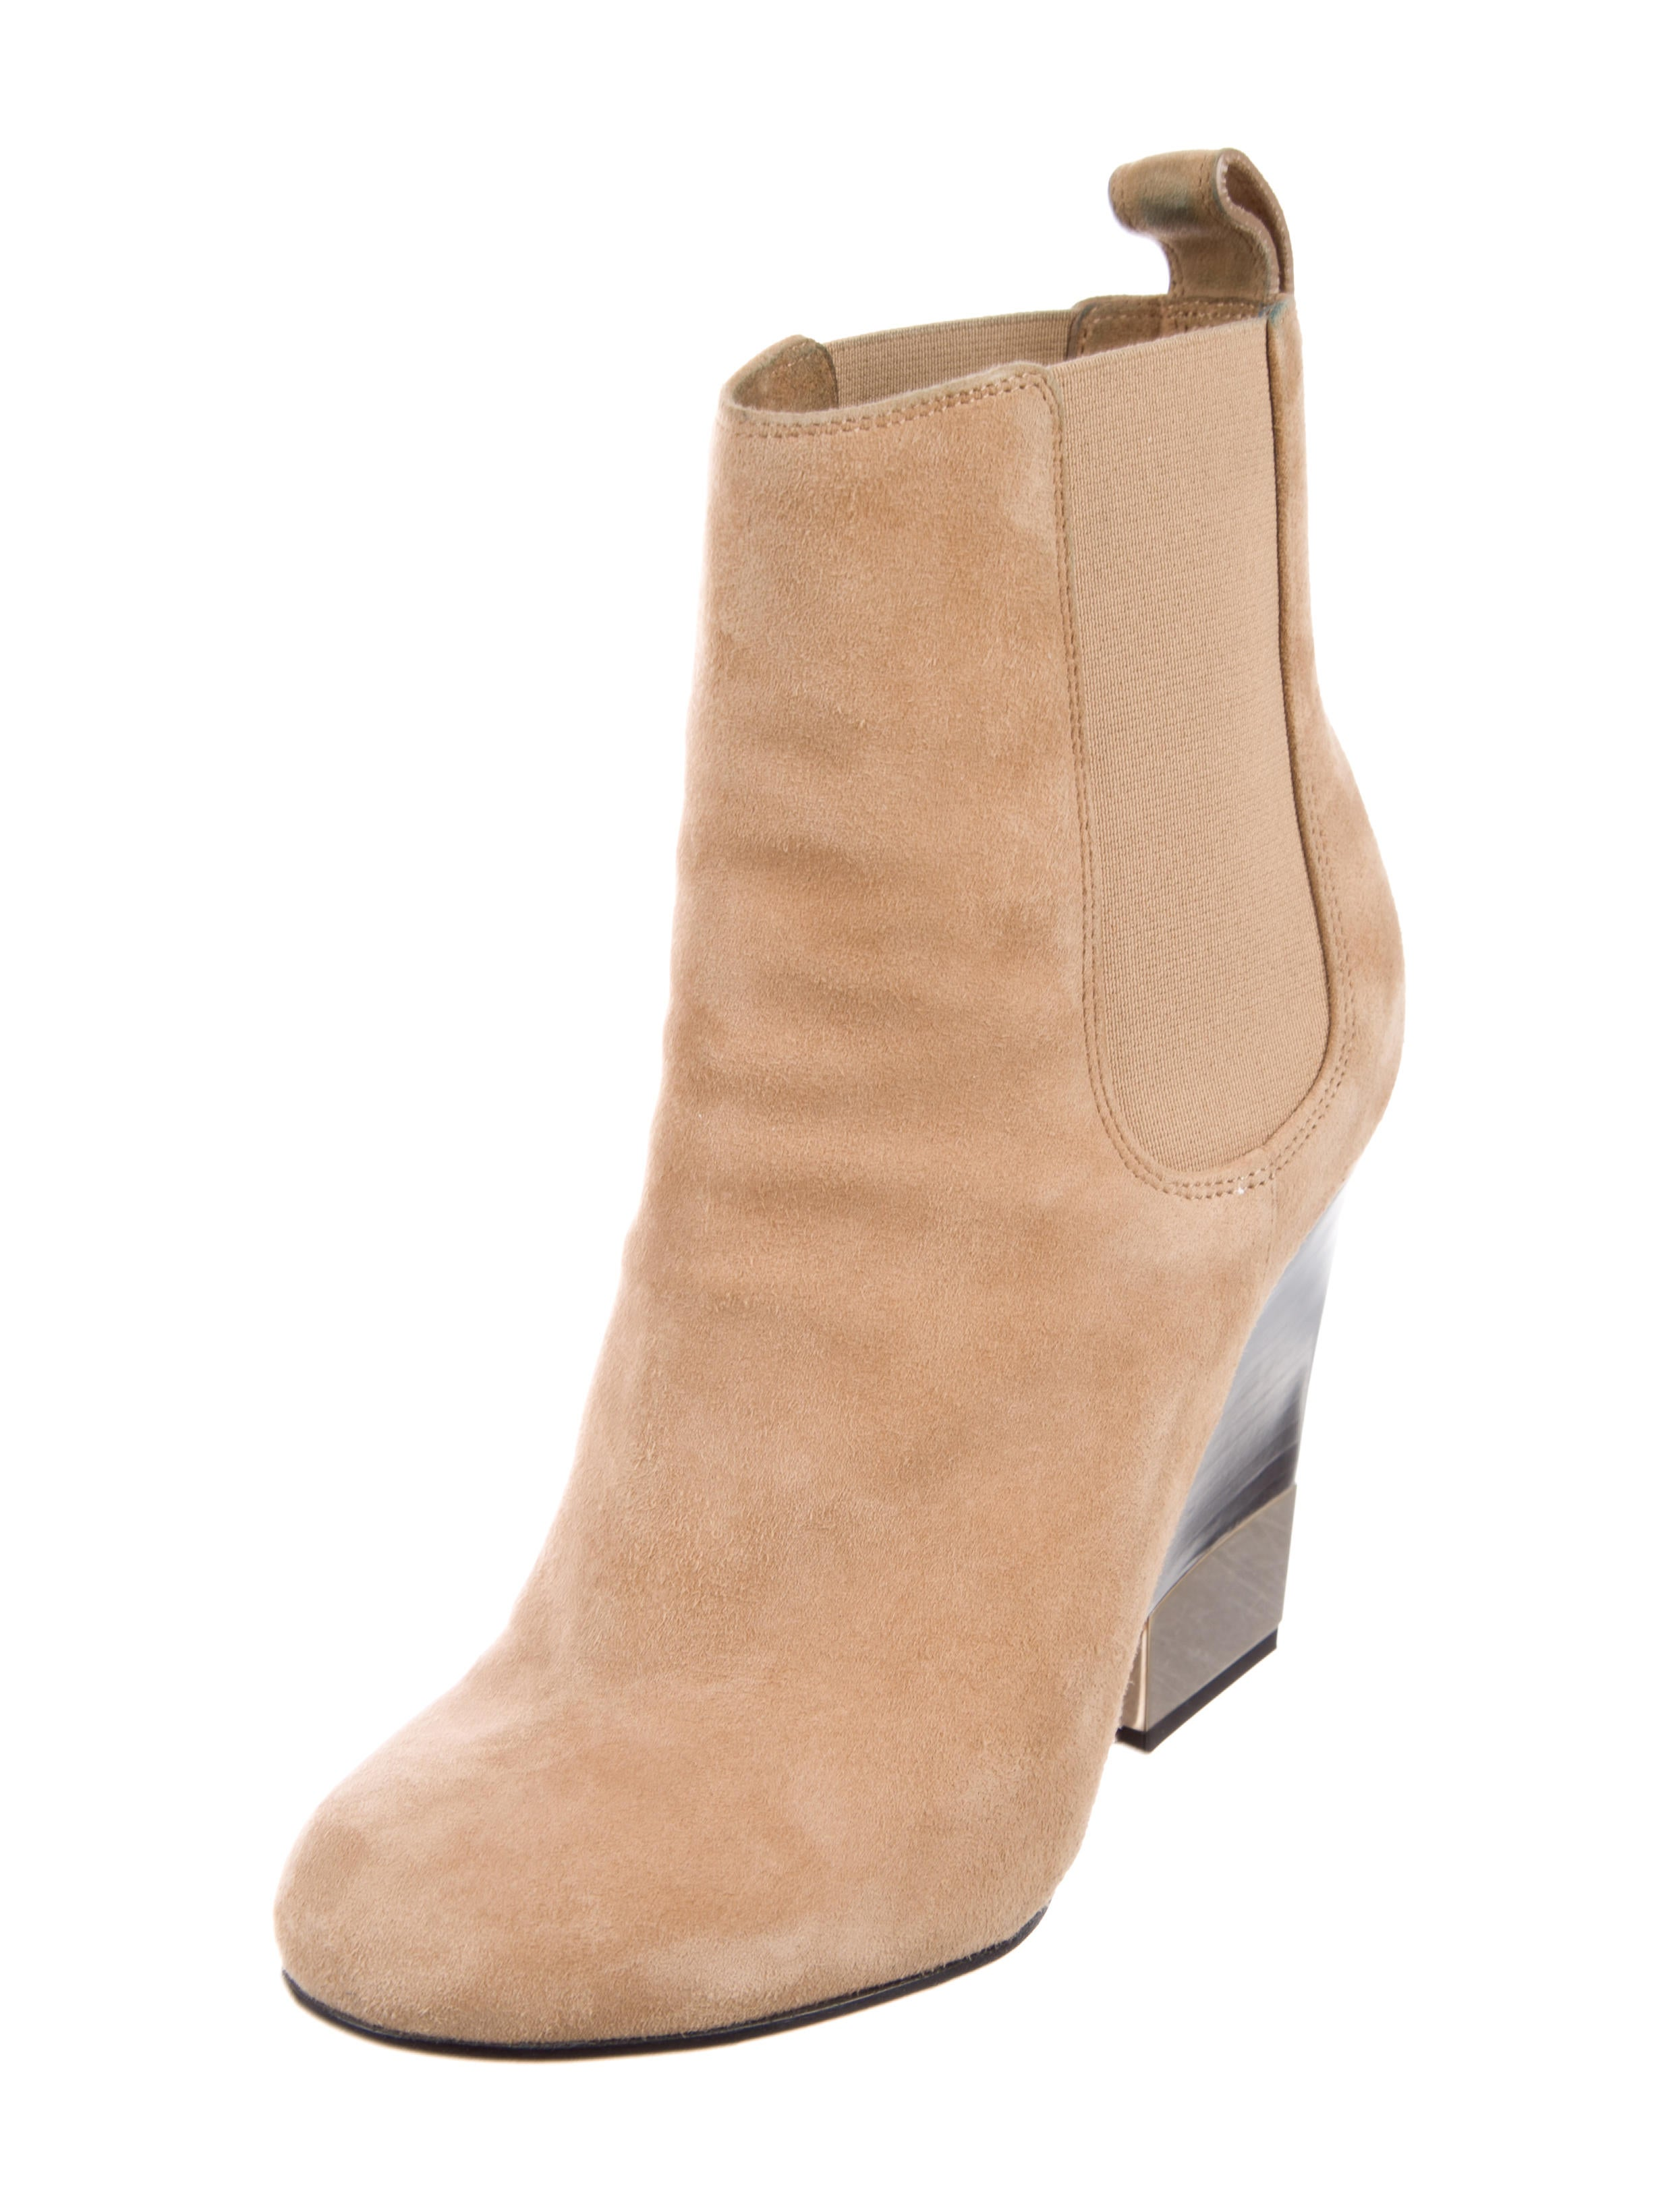 latest cheap online Givenchy Suede Round-Toe Ankle Boots outlet 100% original 9Rj63UiO6S